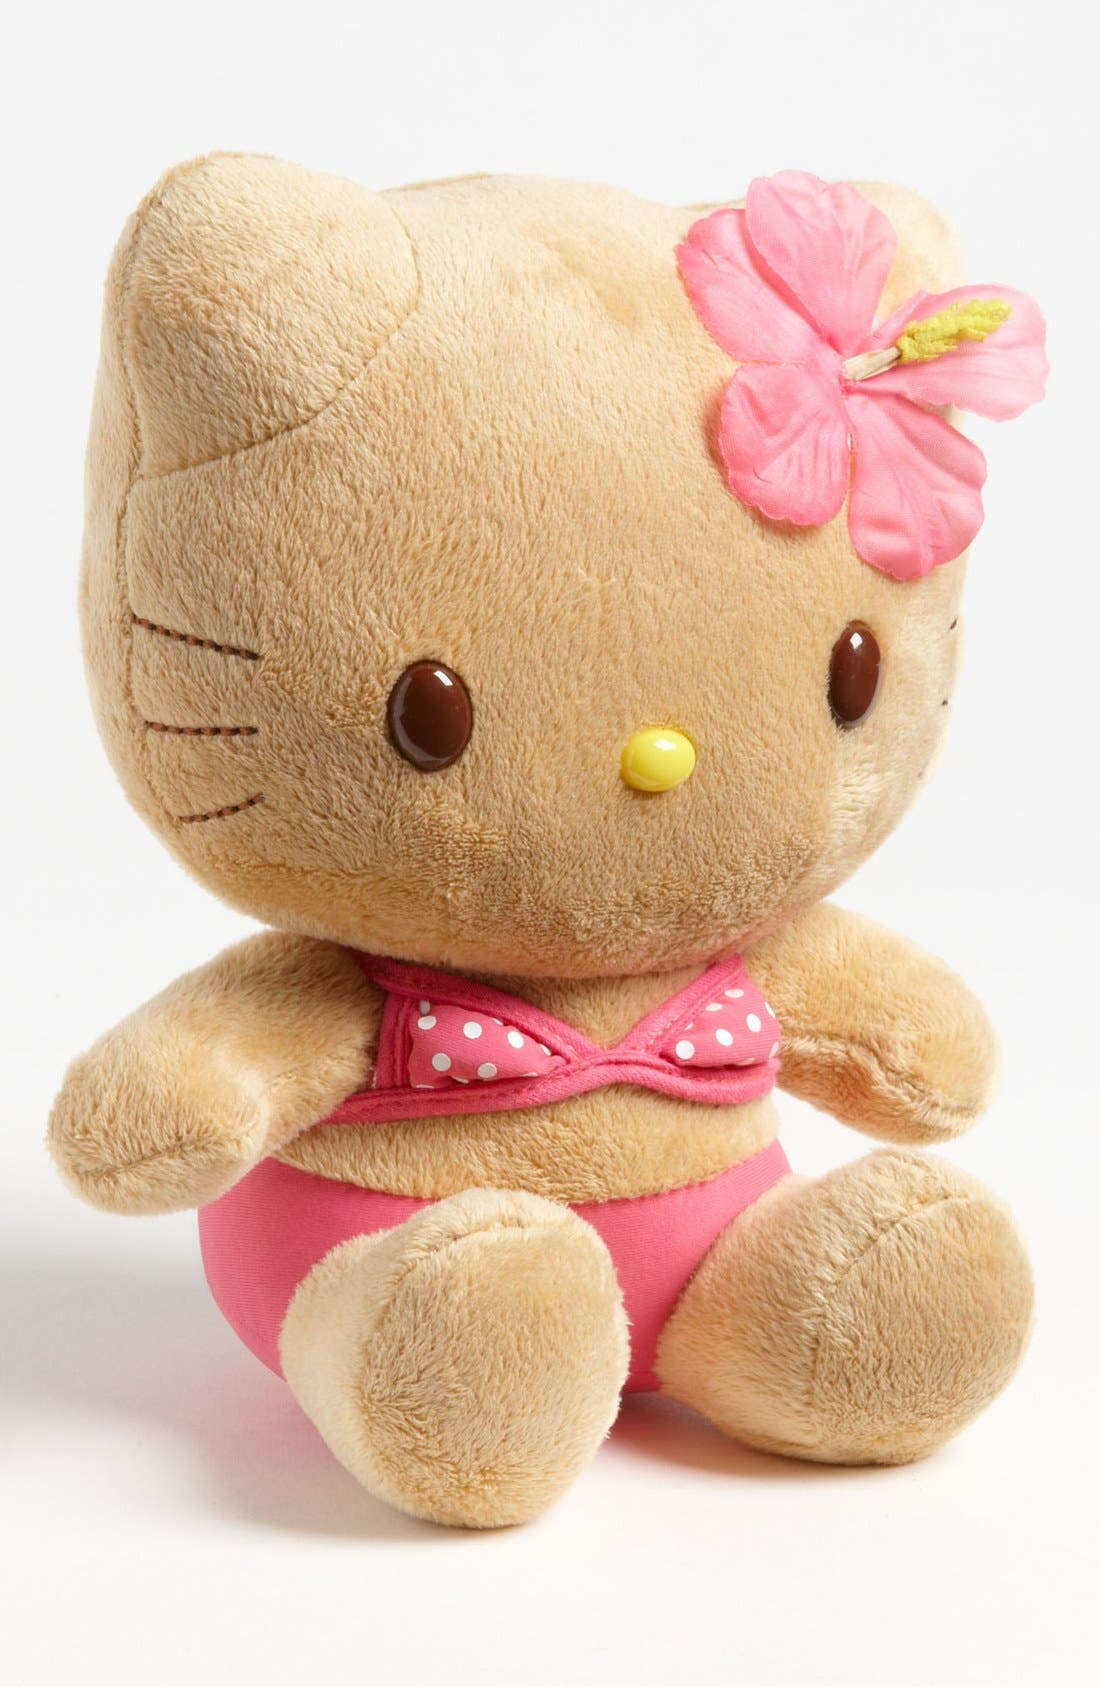 Alternate Image 1 Selected - Hello Kitty® 'Suntan Kitty' Stuffed Animal (8 inch)